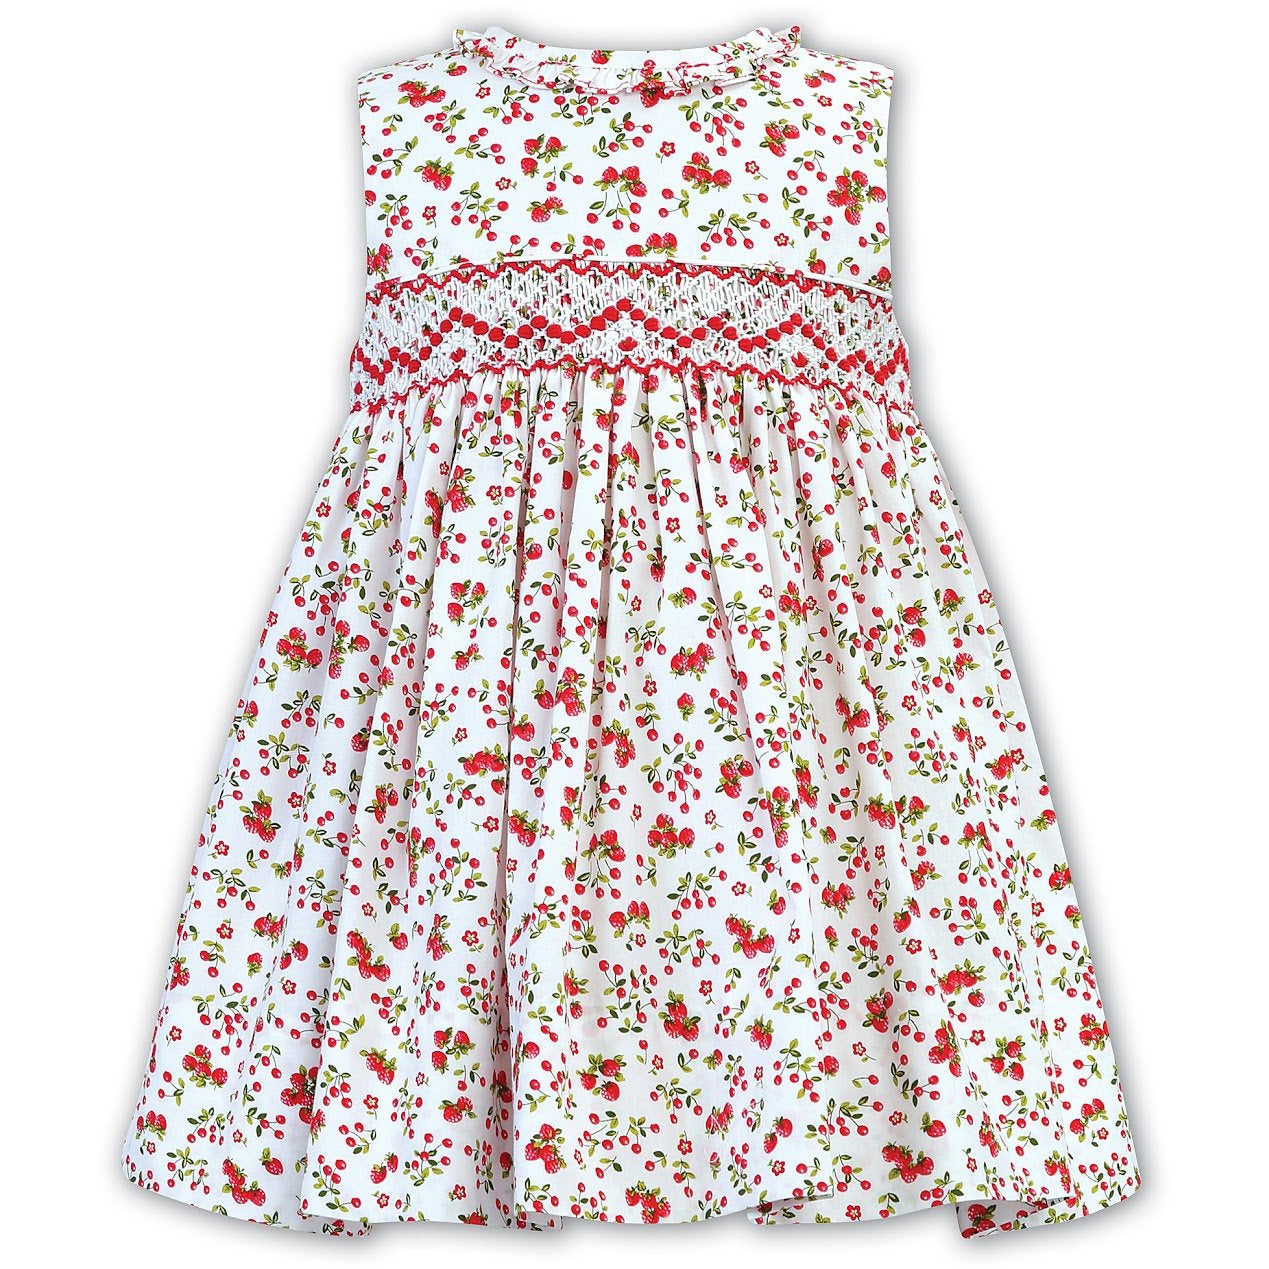 Hand Smocked Cherry Print Dress